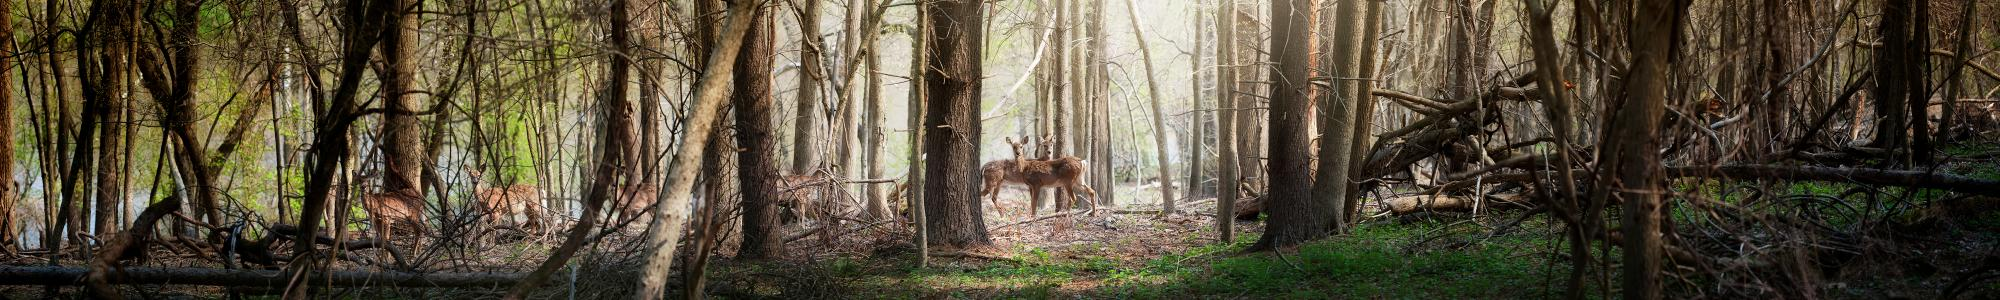 Image of deer in the forest